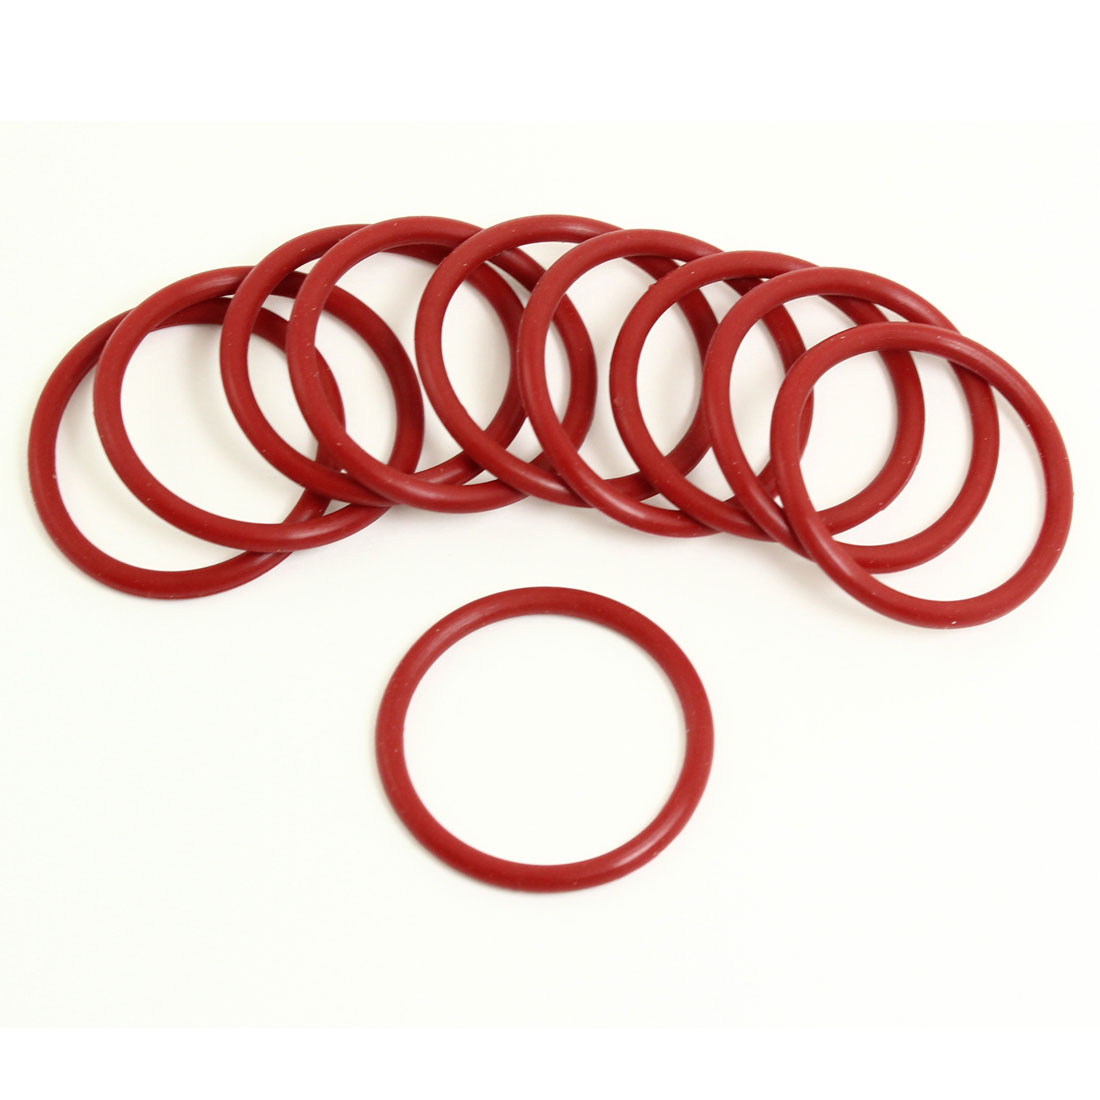 10 Piece 32mm x 2.5mm uxcell Metric Rubber Sealing Oil Filter O Rings Gaskets